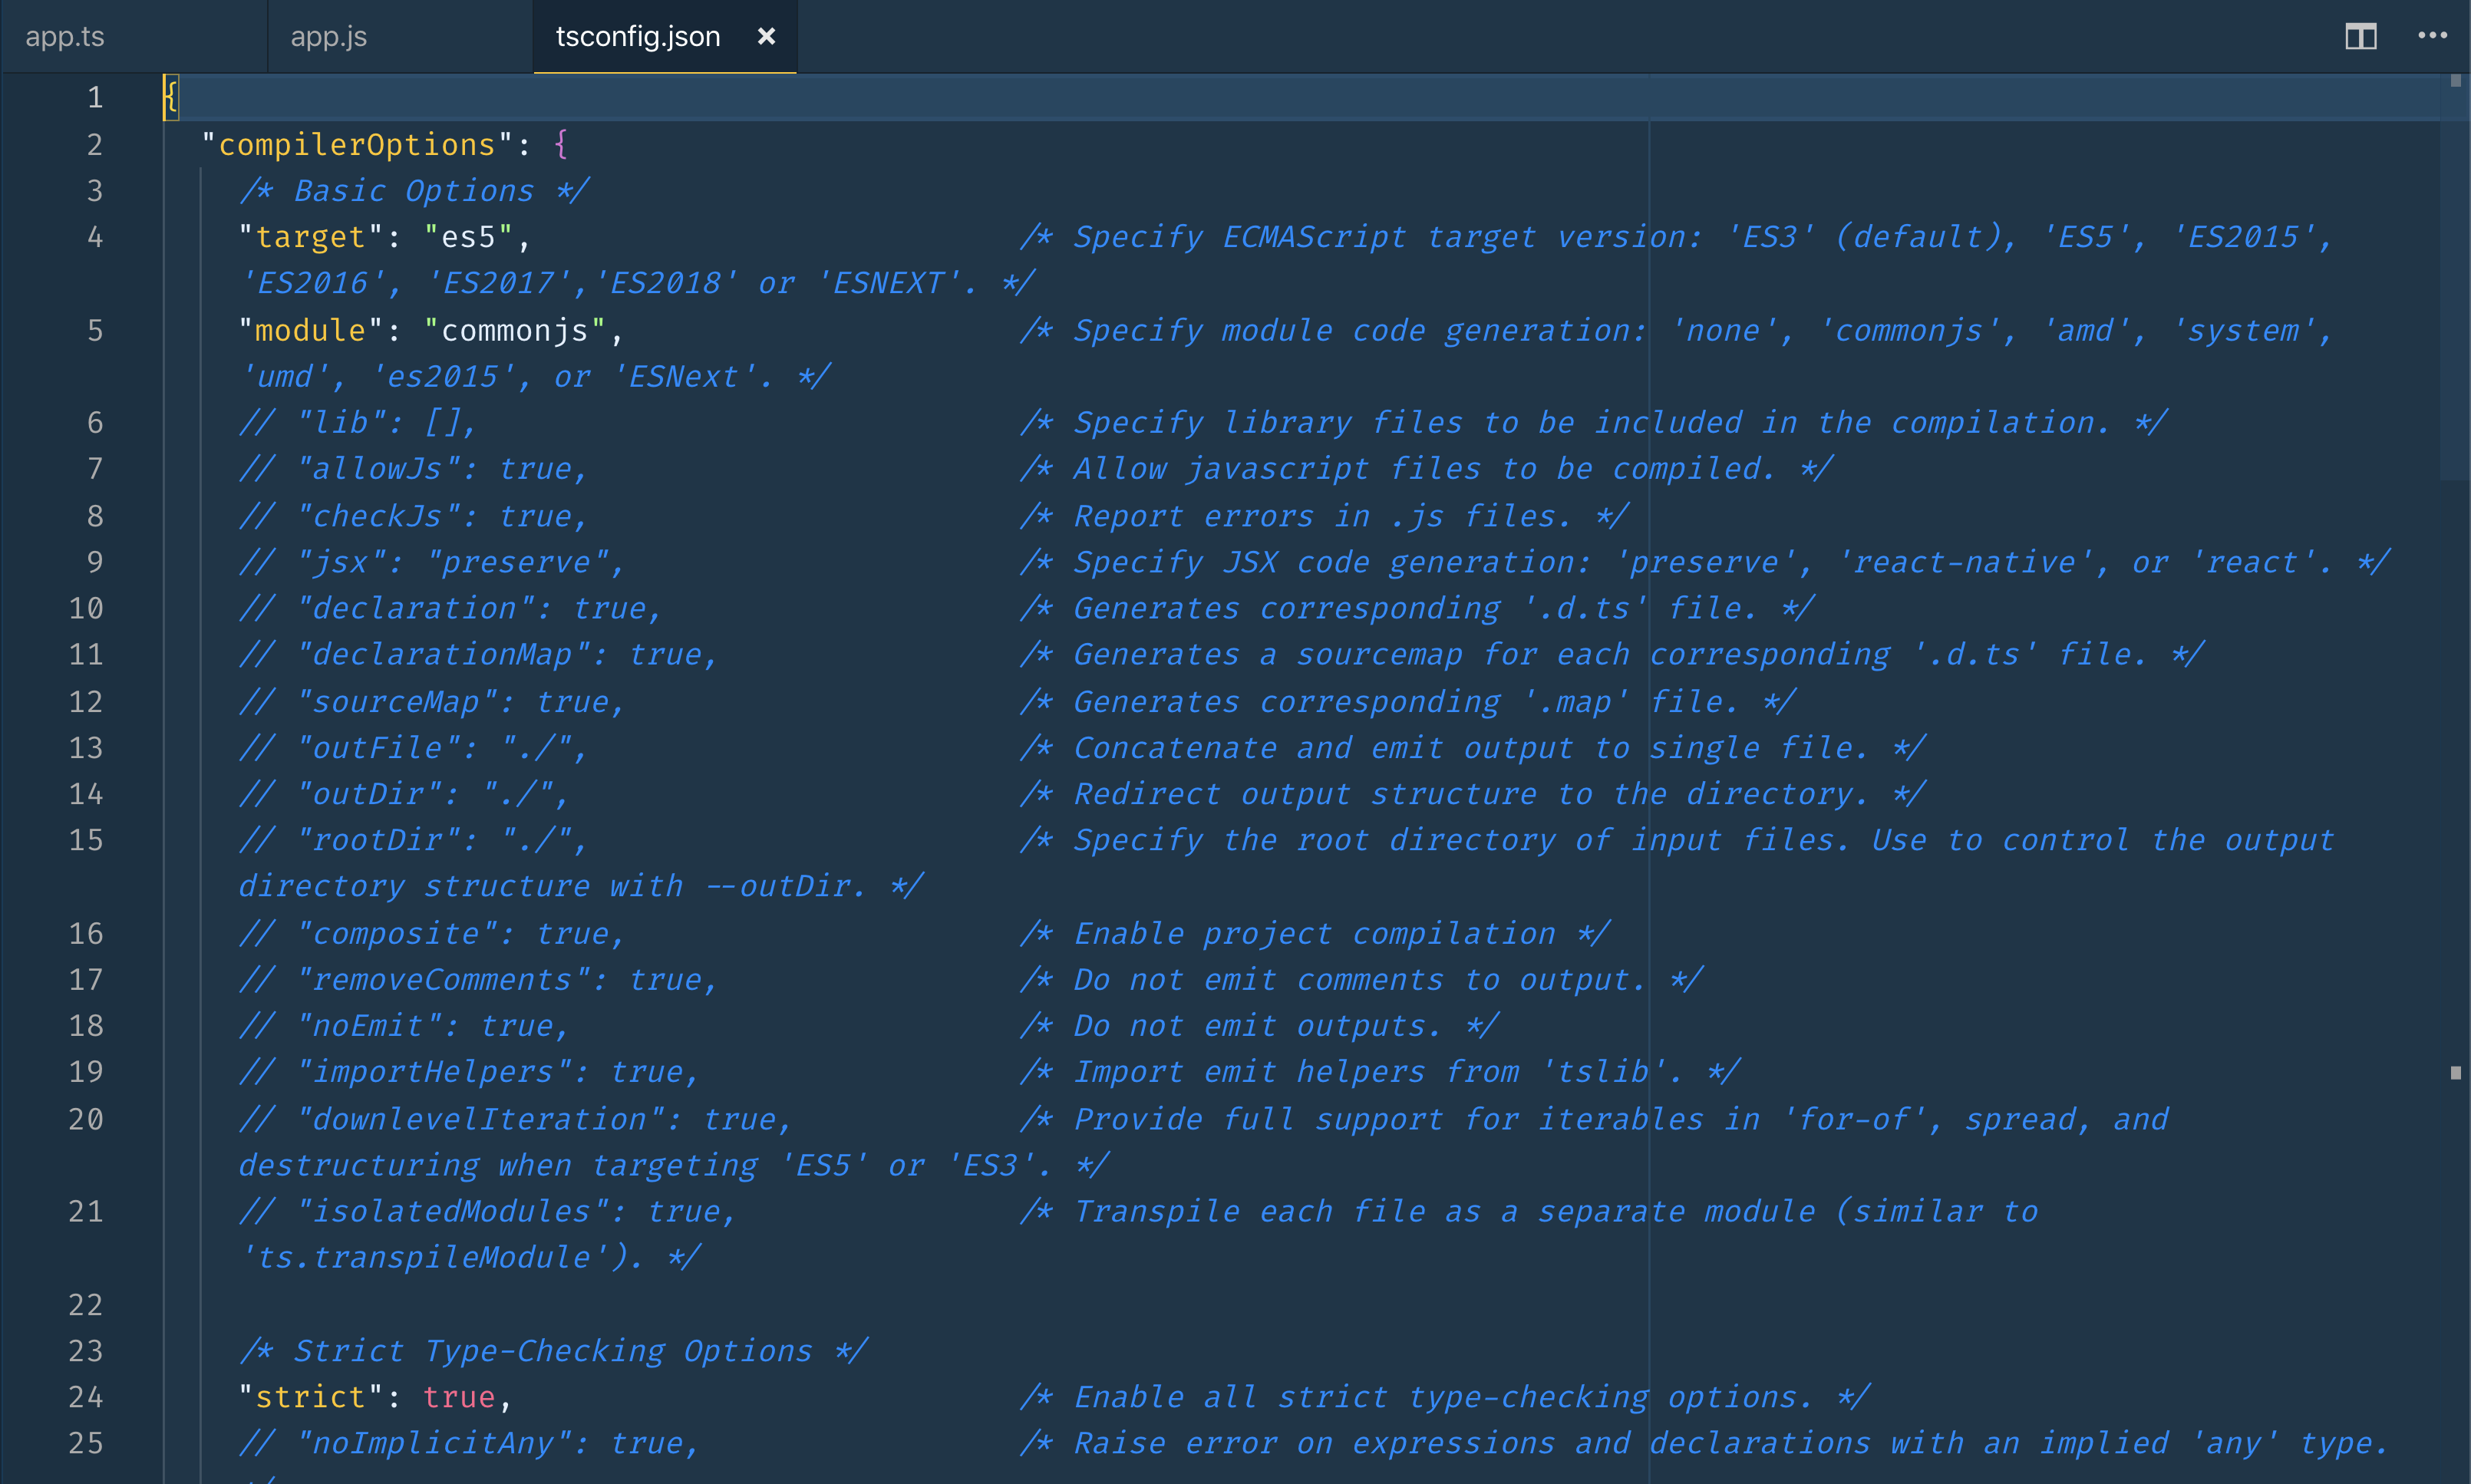 Screenshot of options listed and commented out in the new config file